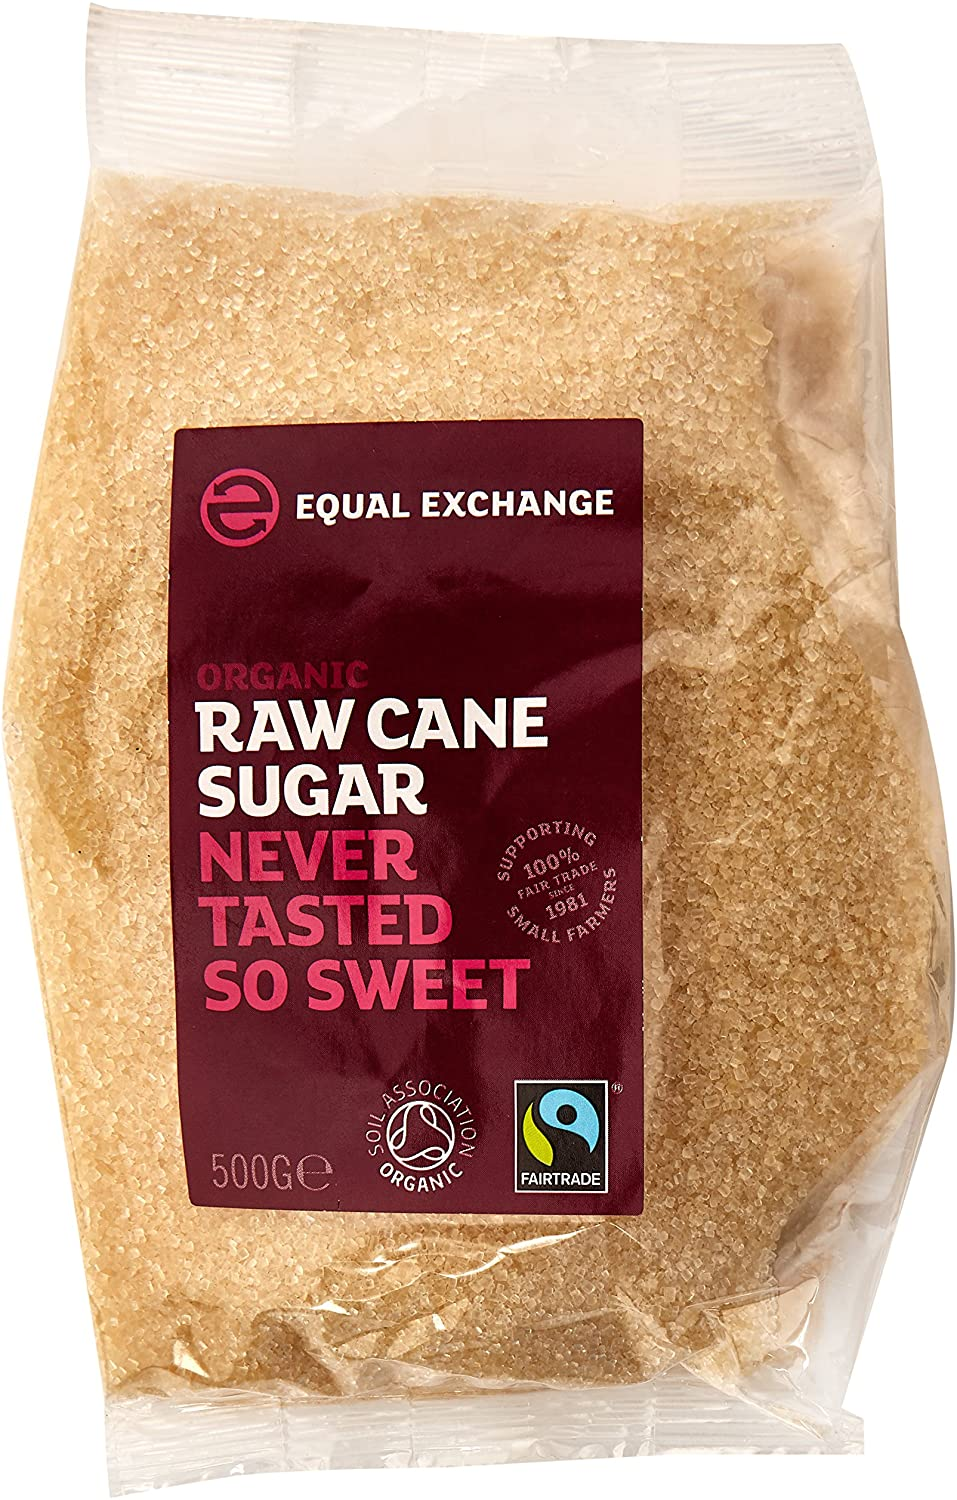 Equal Exchange Organic Raw Cane Sugar